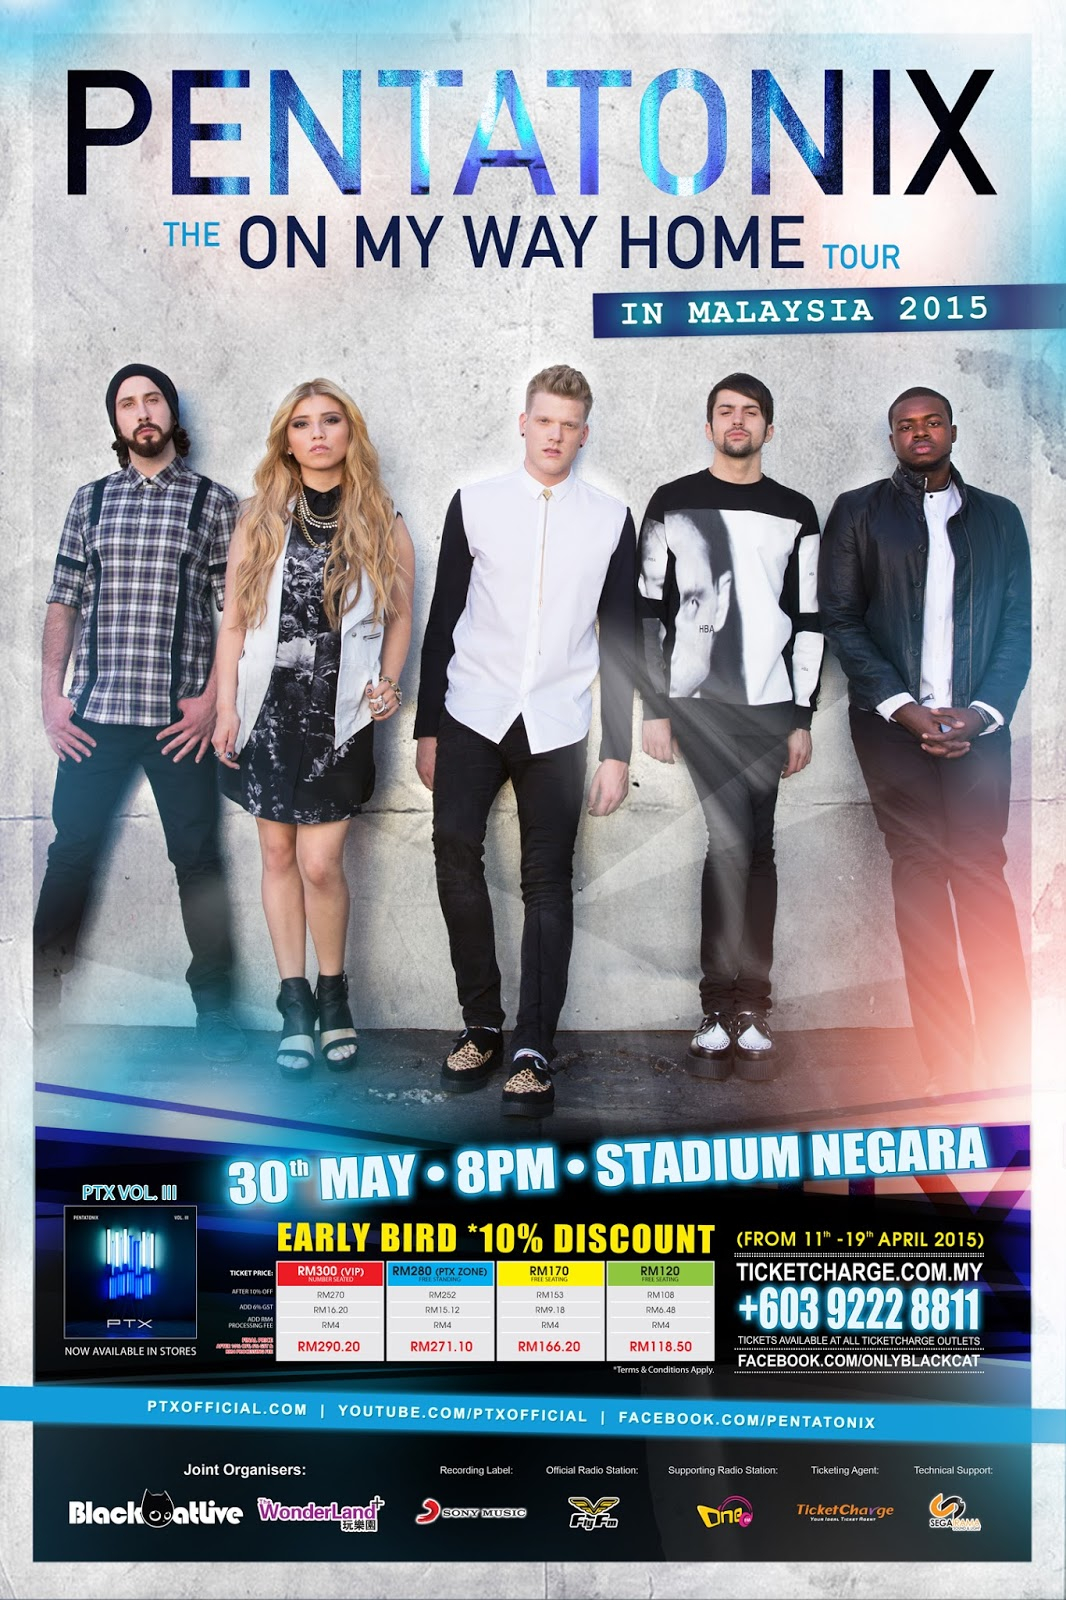 PENTATONIX Live in Malaysia 2015 - The On My Way Home Tour 30th May 8PM @ Stadium Negara